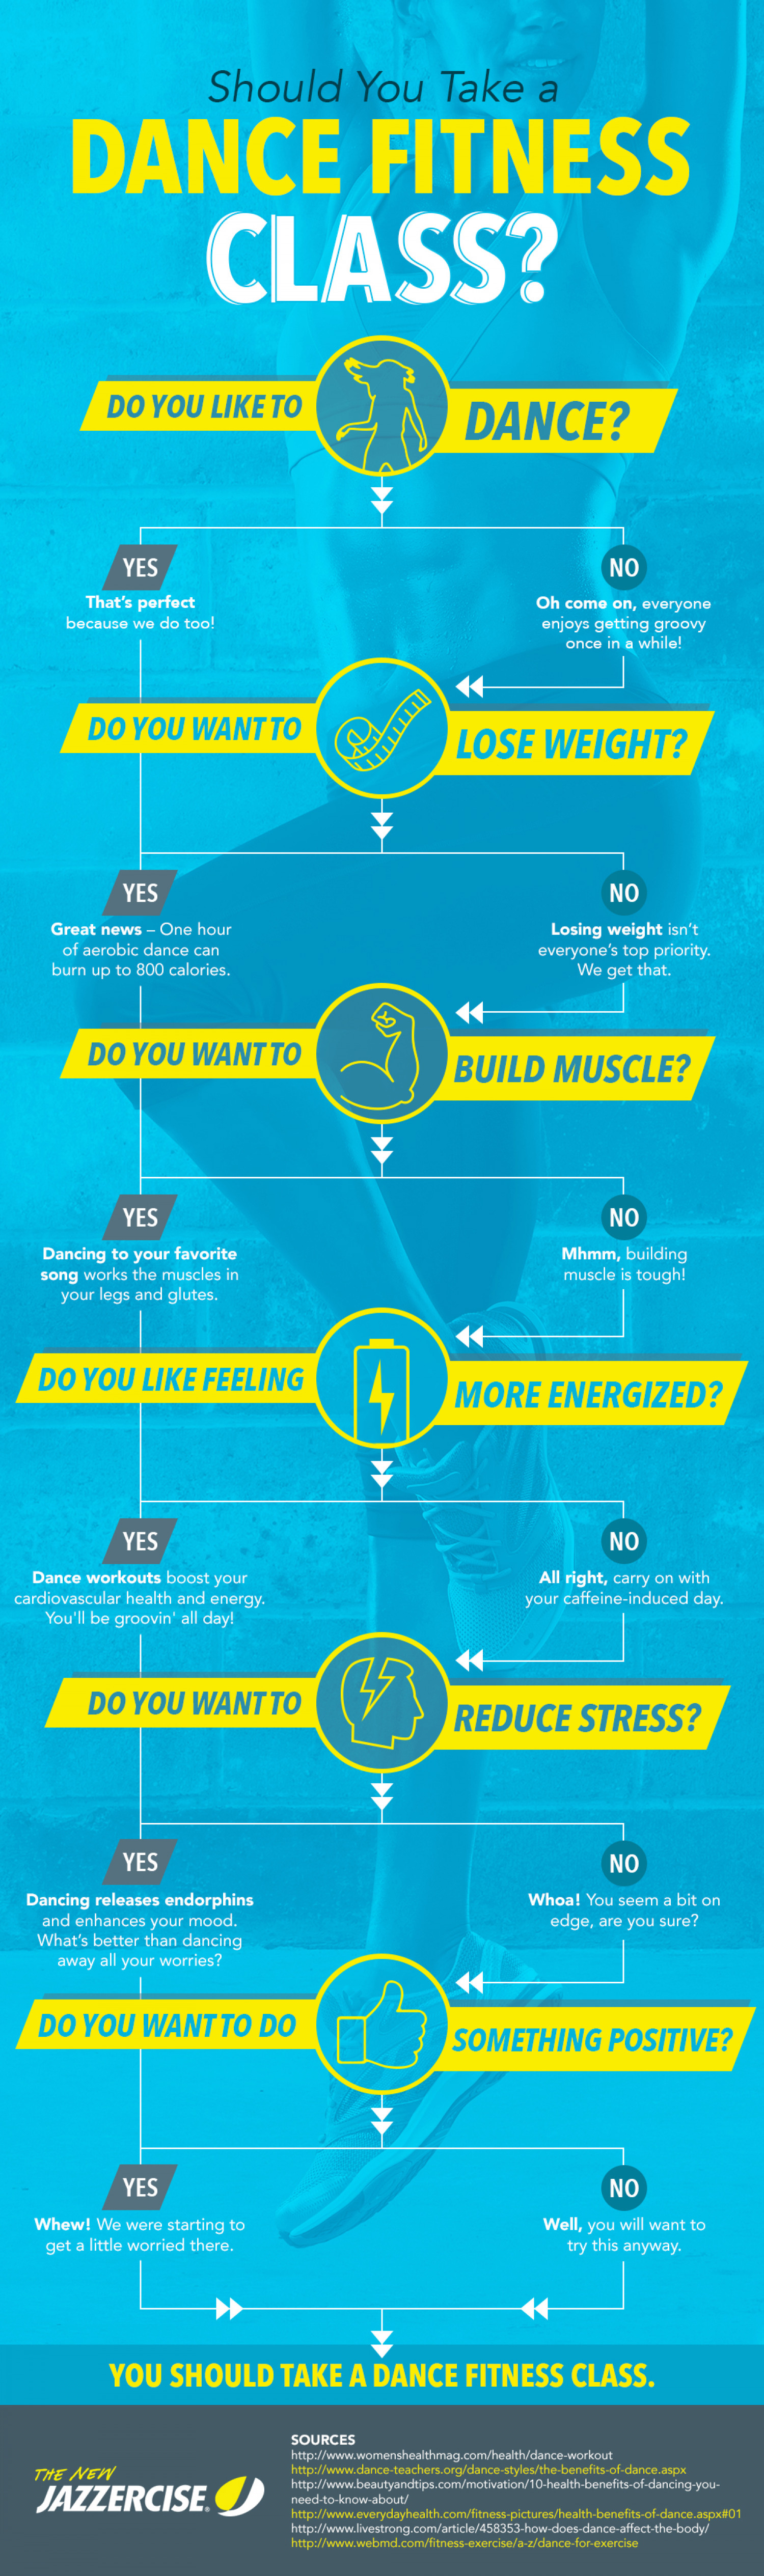 SHOULD YOU TAKE A DANCE FITNESS CLASS? Infographic